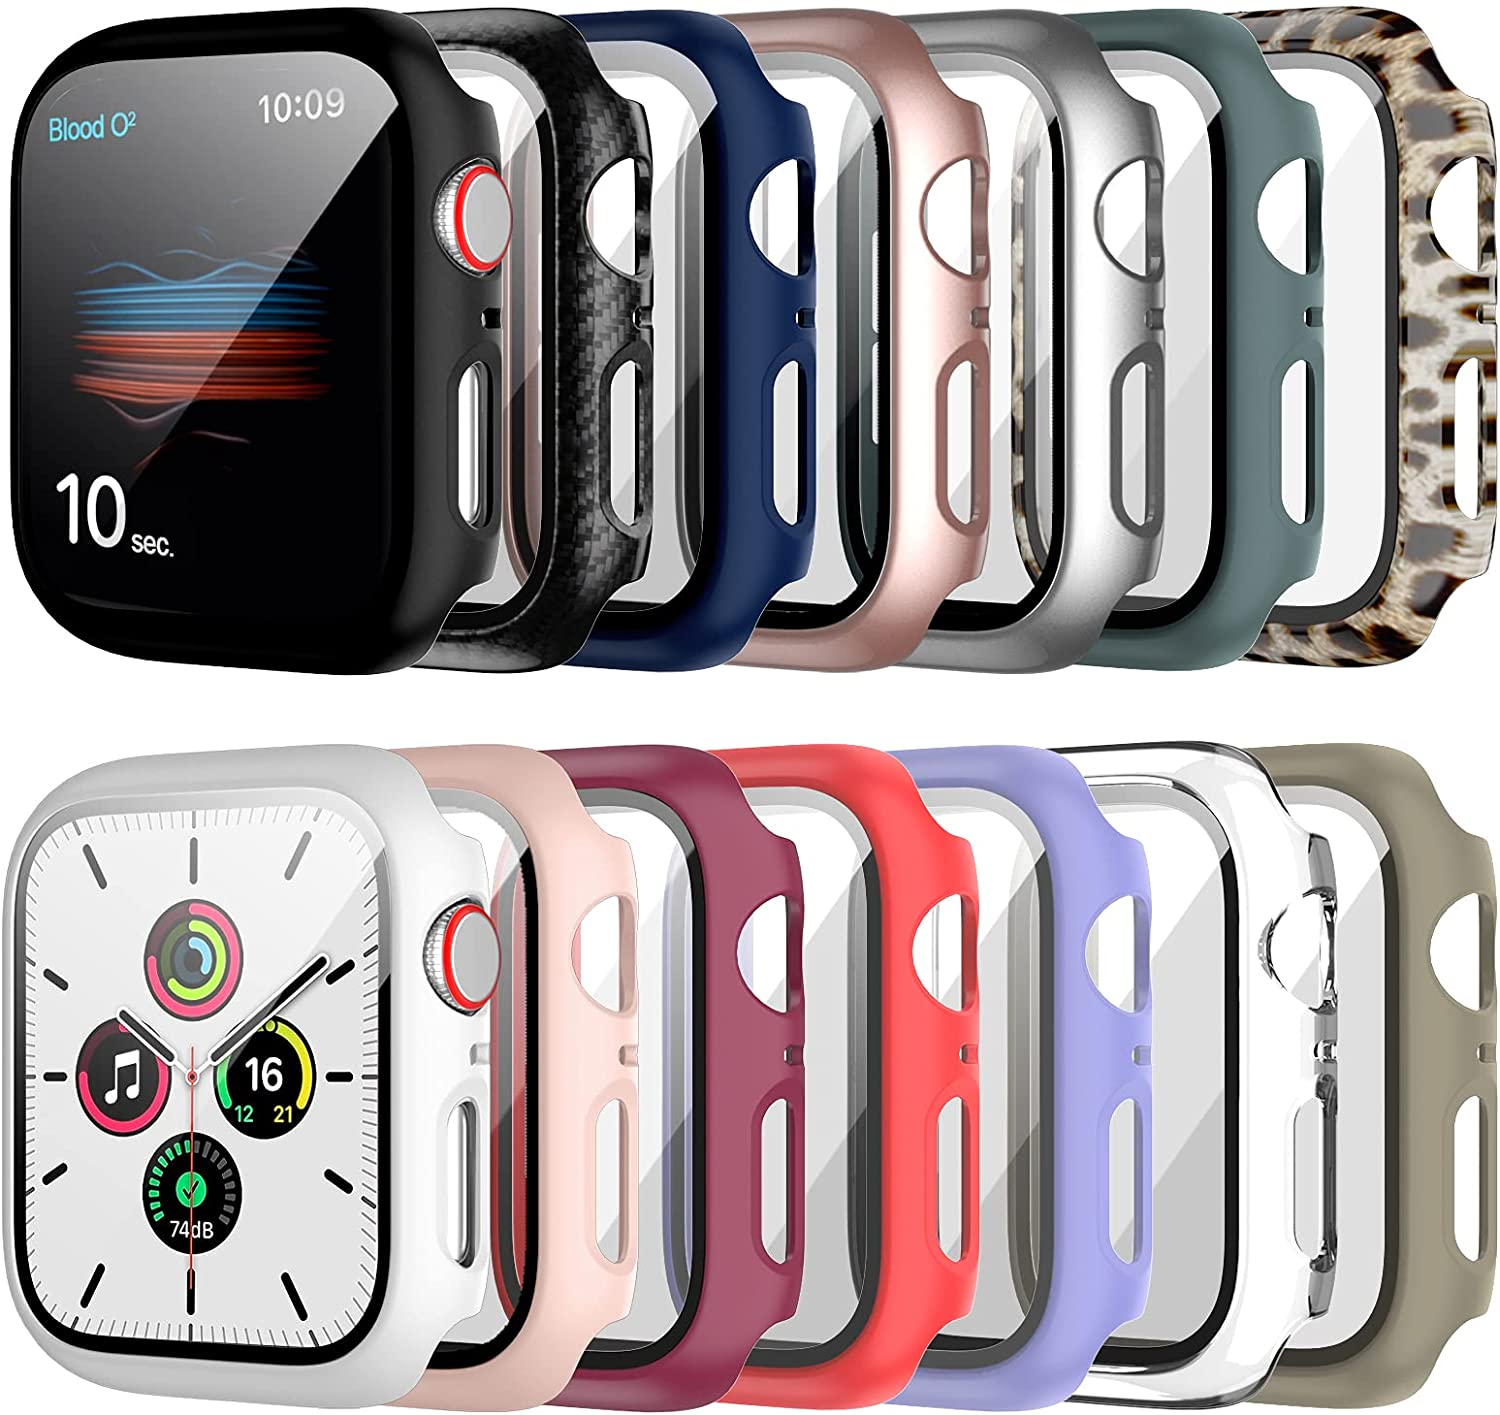 14 Pack Case with Tempered Glass Screen Protector for Apple Watch 38mm Series 3/2/1,anotch Slim Guard Bumper Full Coverage Hard PC Protective Cover HD Ultra-Thin Cover for iWatch 38mm Accessories